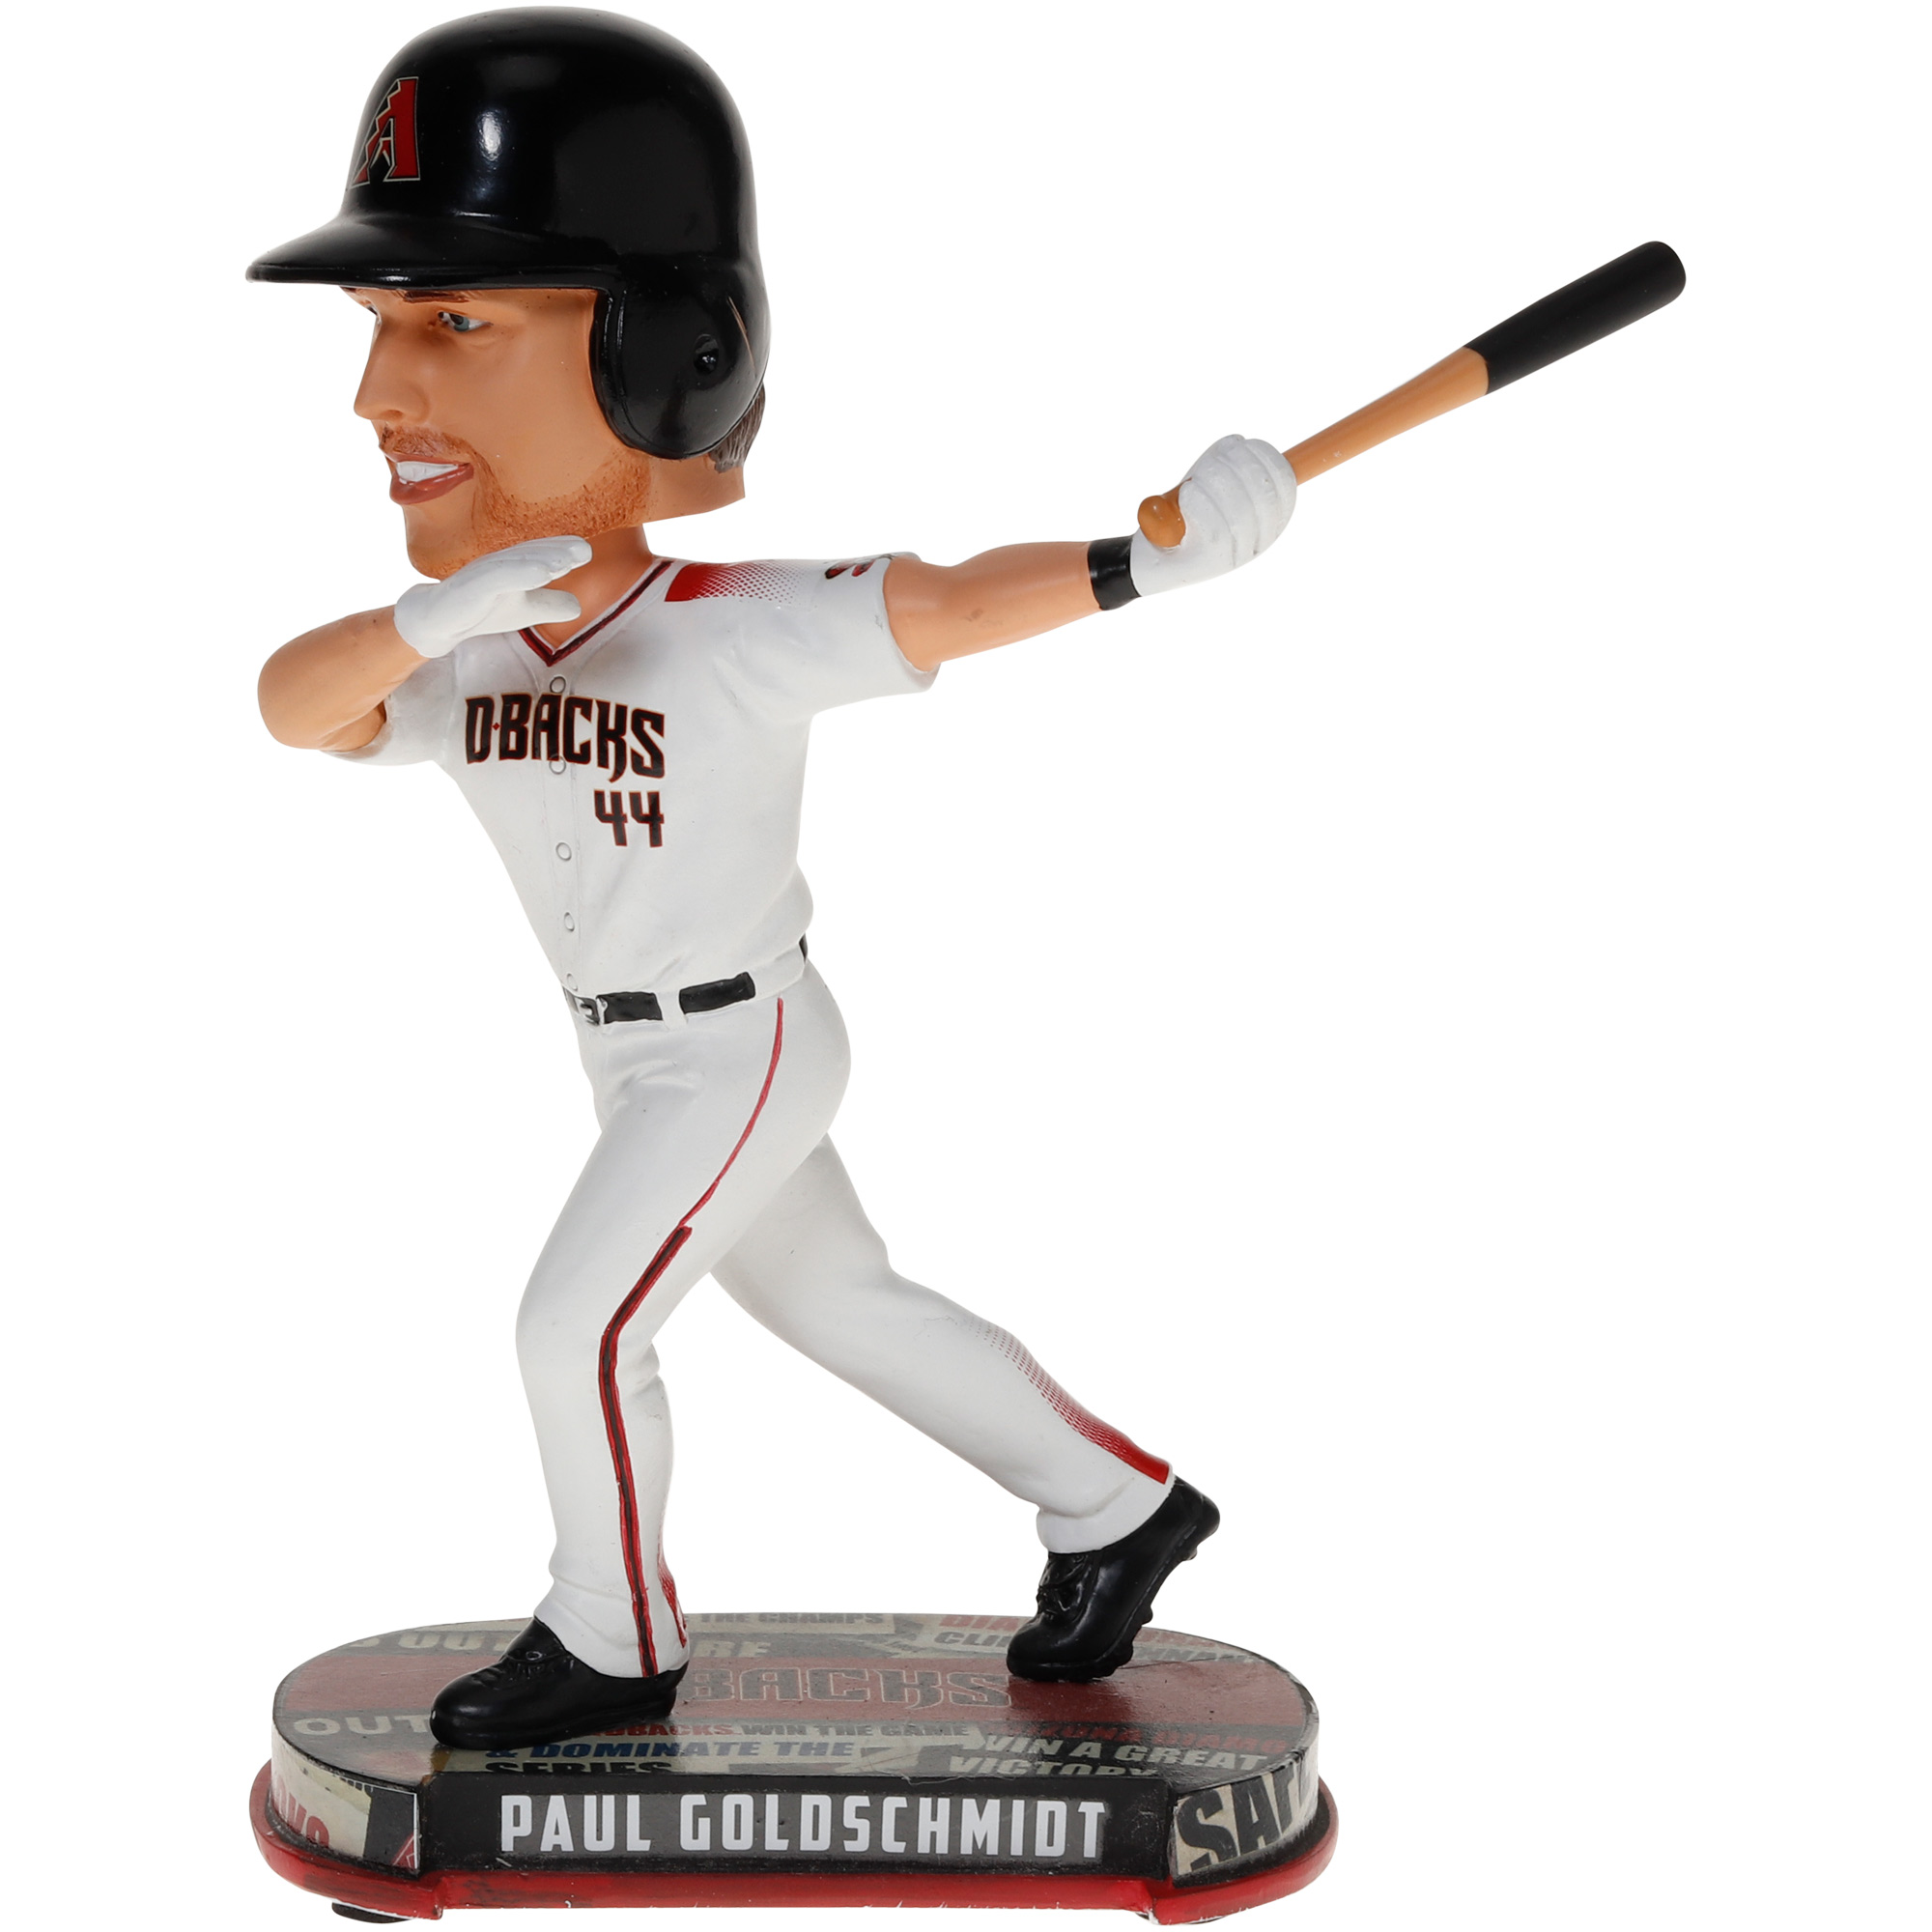 Paul Goldschmidt Arizona Diamondbacks Headline Bobblehead - No Size